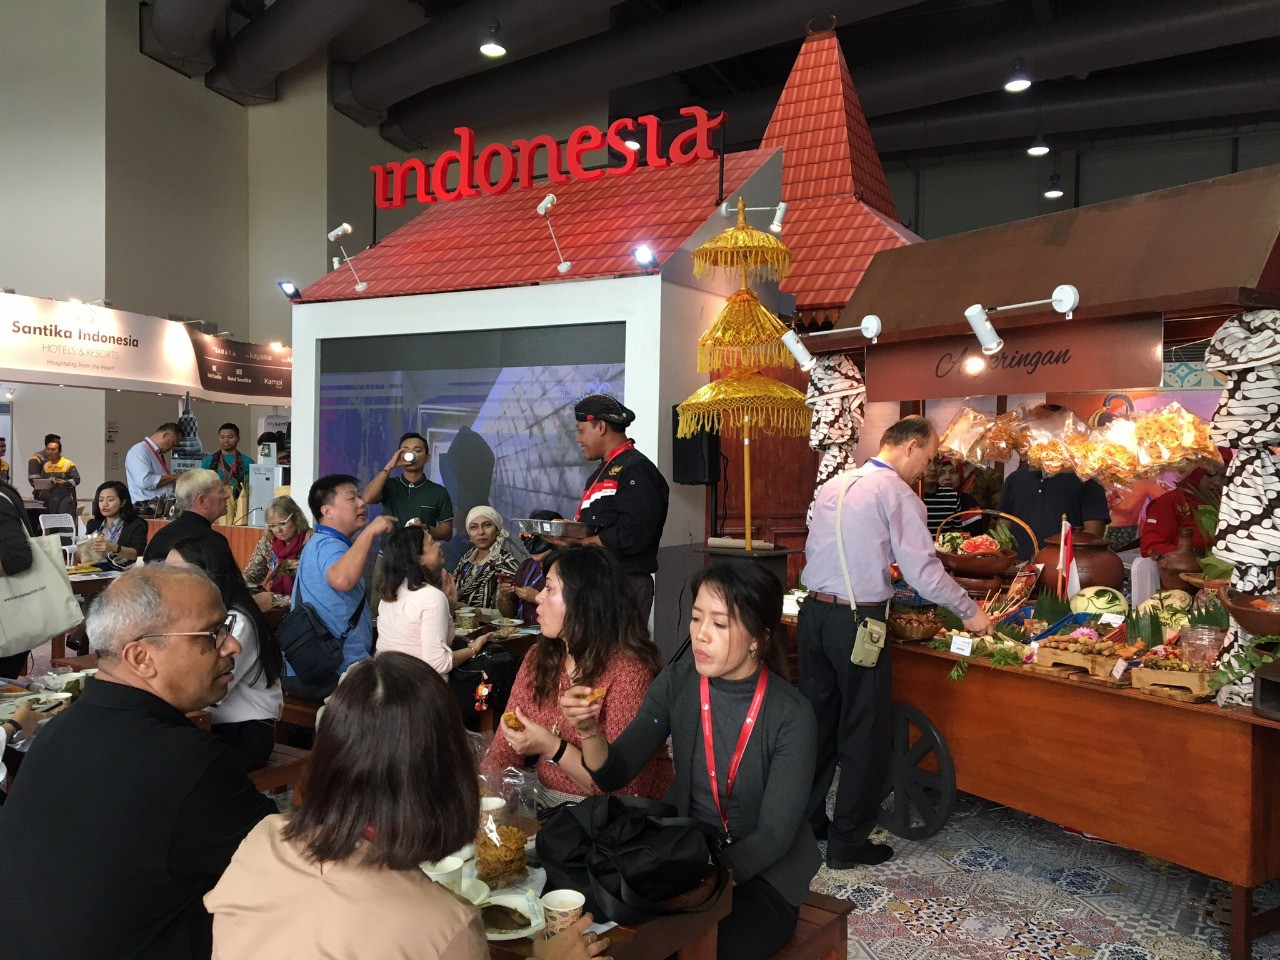 Experts urge ASEAN to harmonize non-tariff barriers to boost intra-regional trade